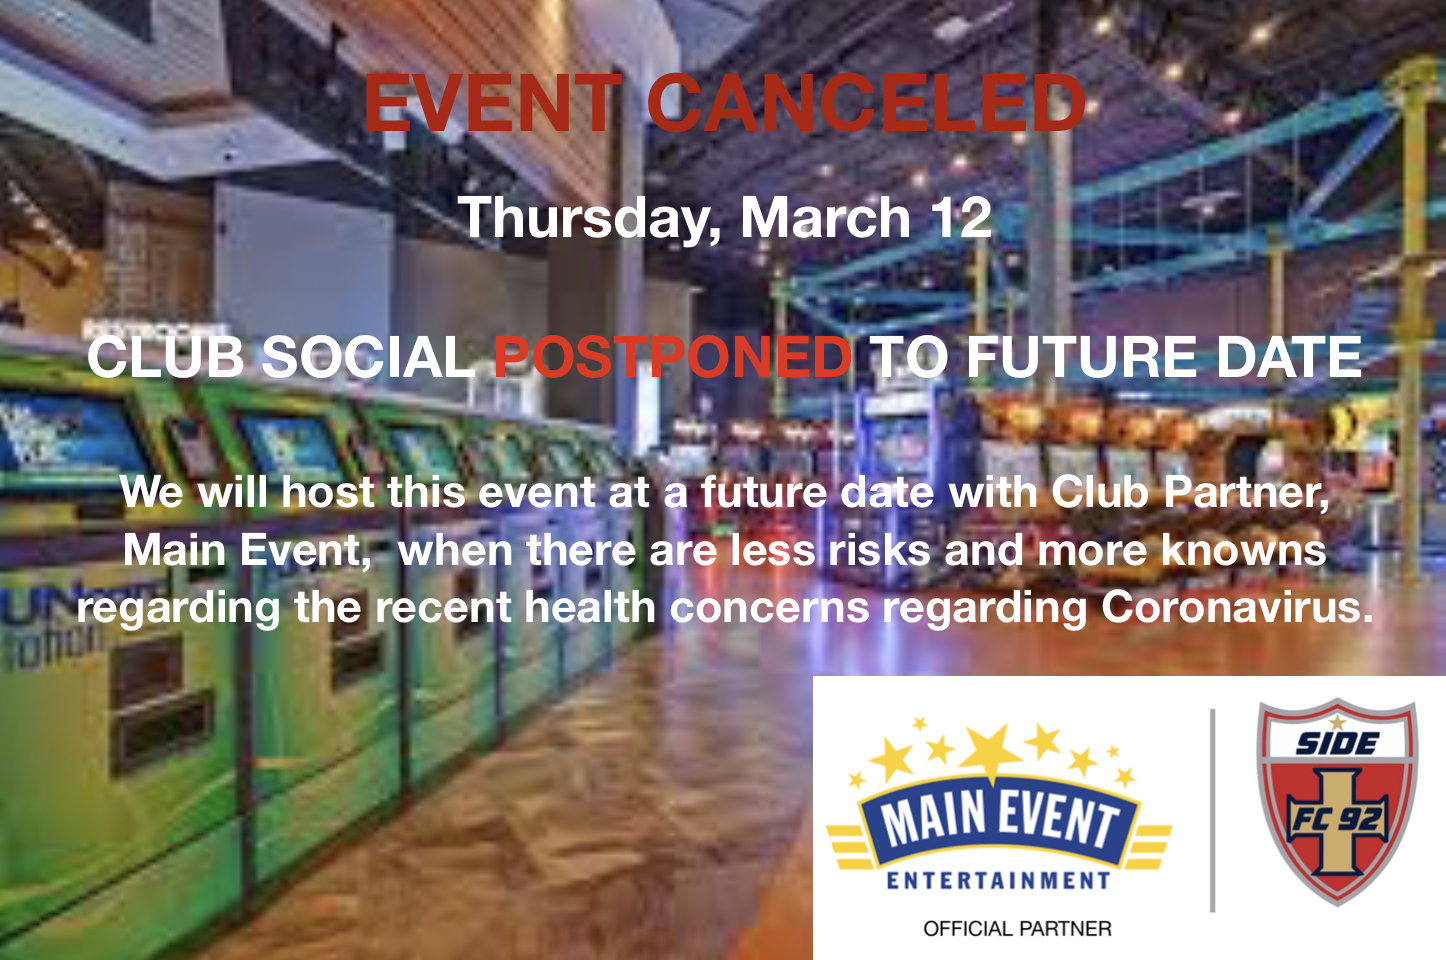 CLUB SOCIAL AT MAIN EVENT CANCELED TONIGHT - TO BE RESCHEDULED